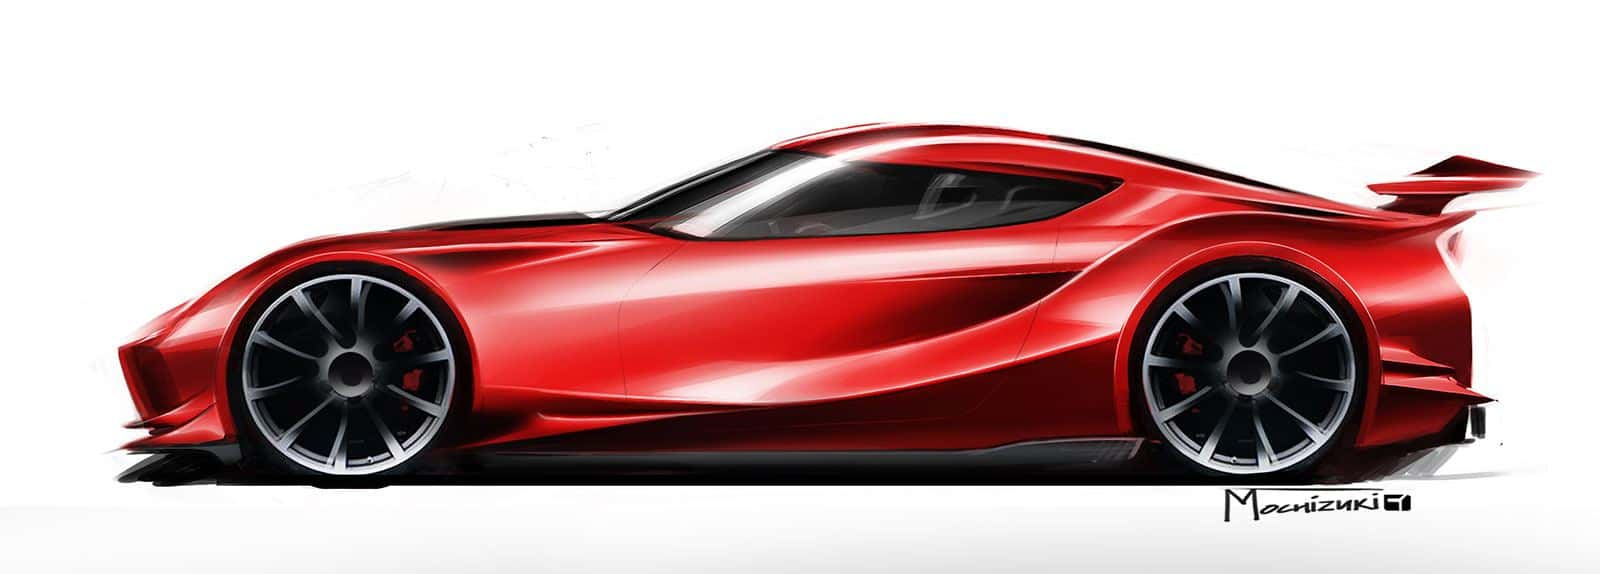 Beautiful Toyota FT 1 Concept Sketch By Bob Mochizuki